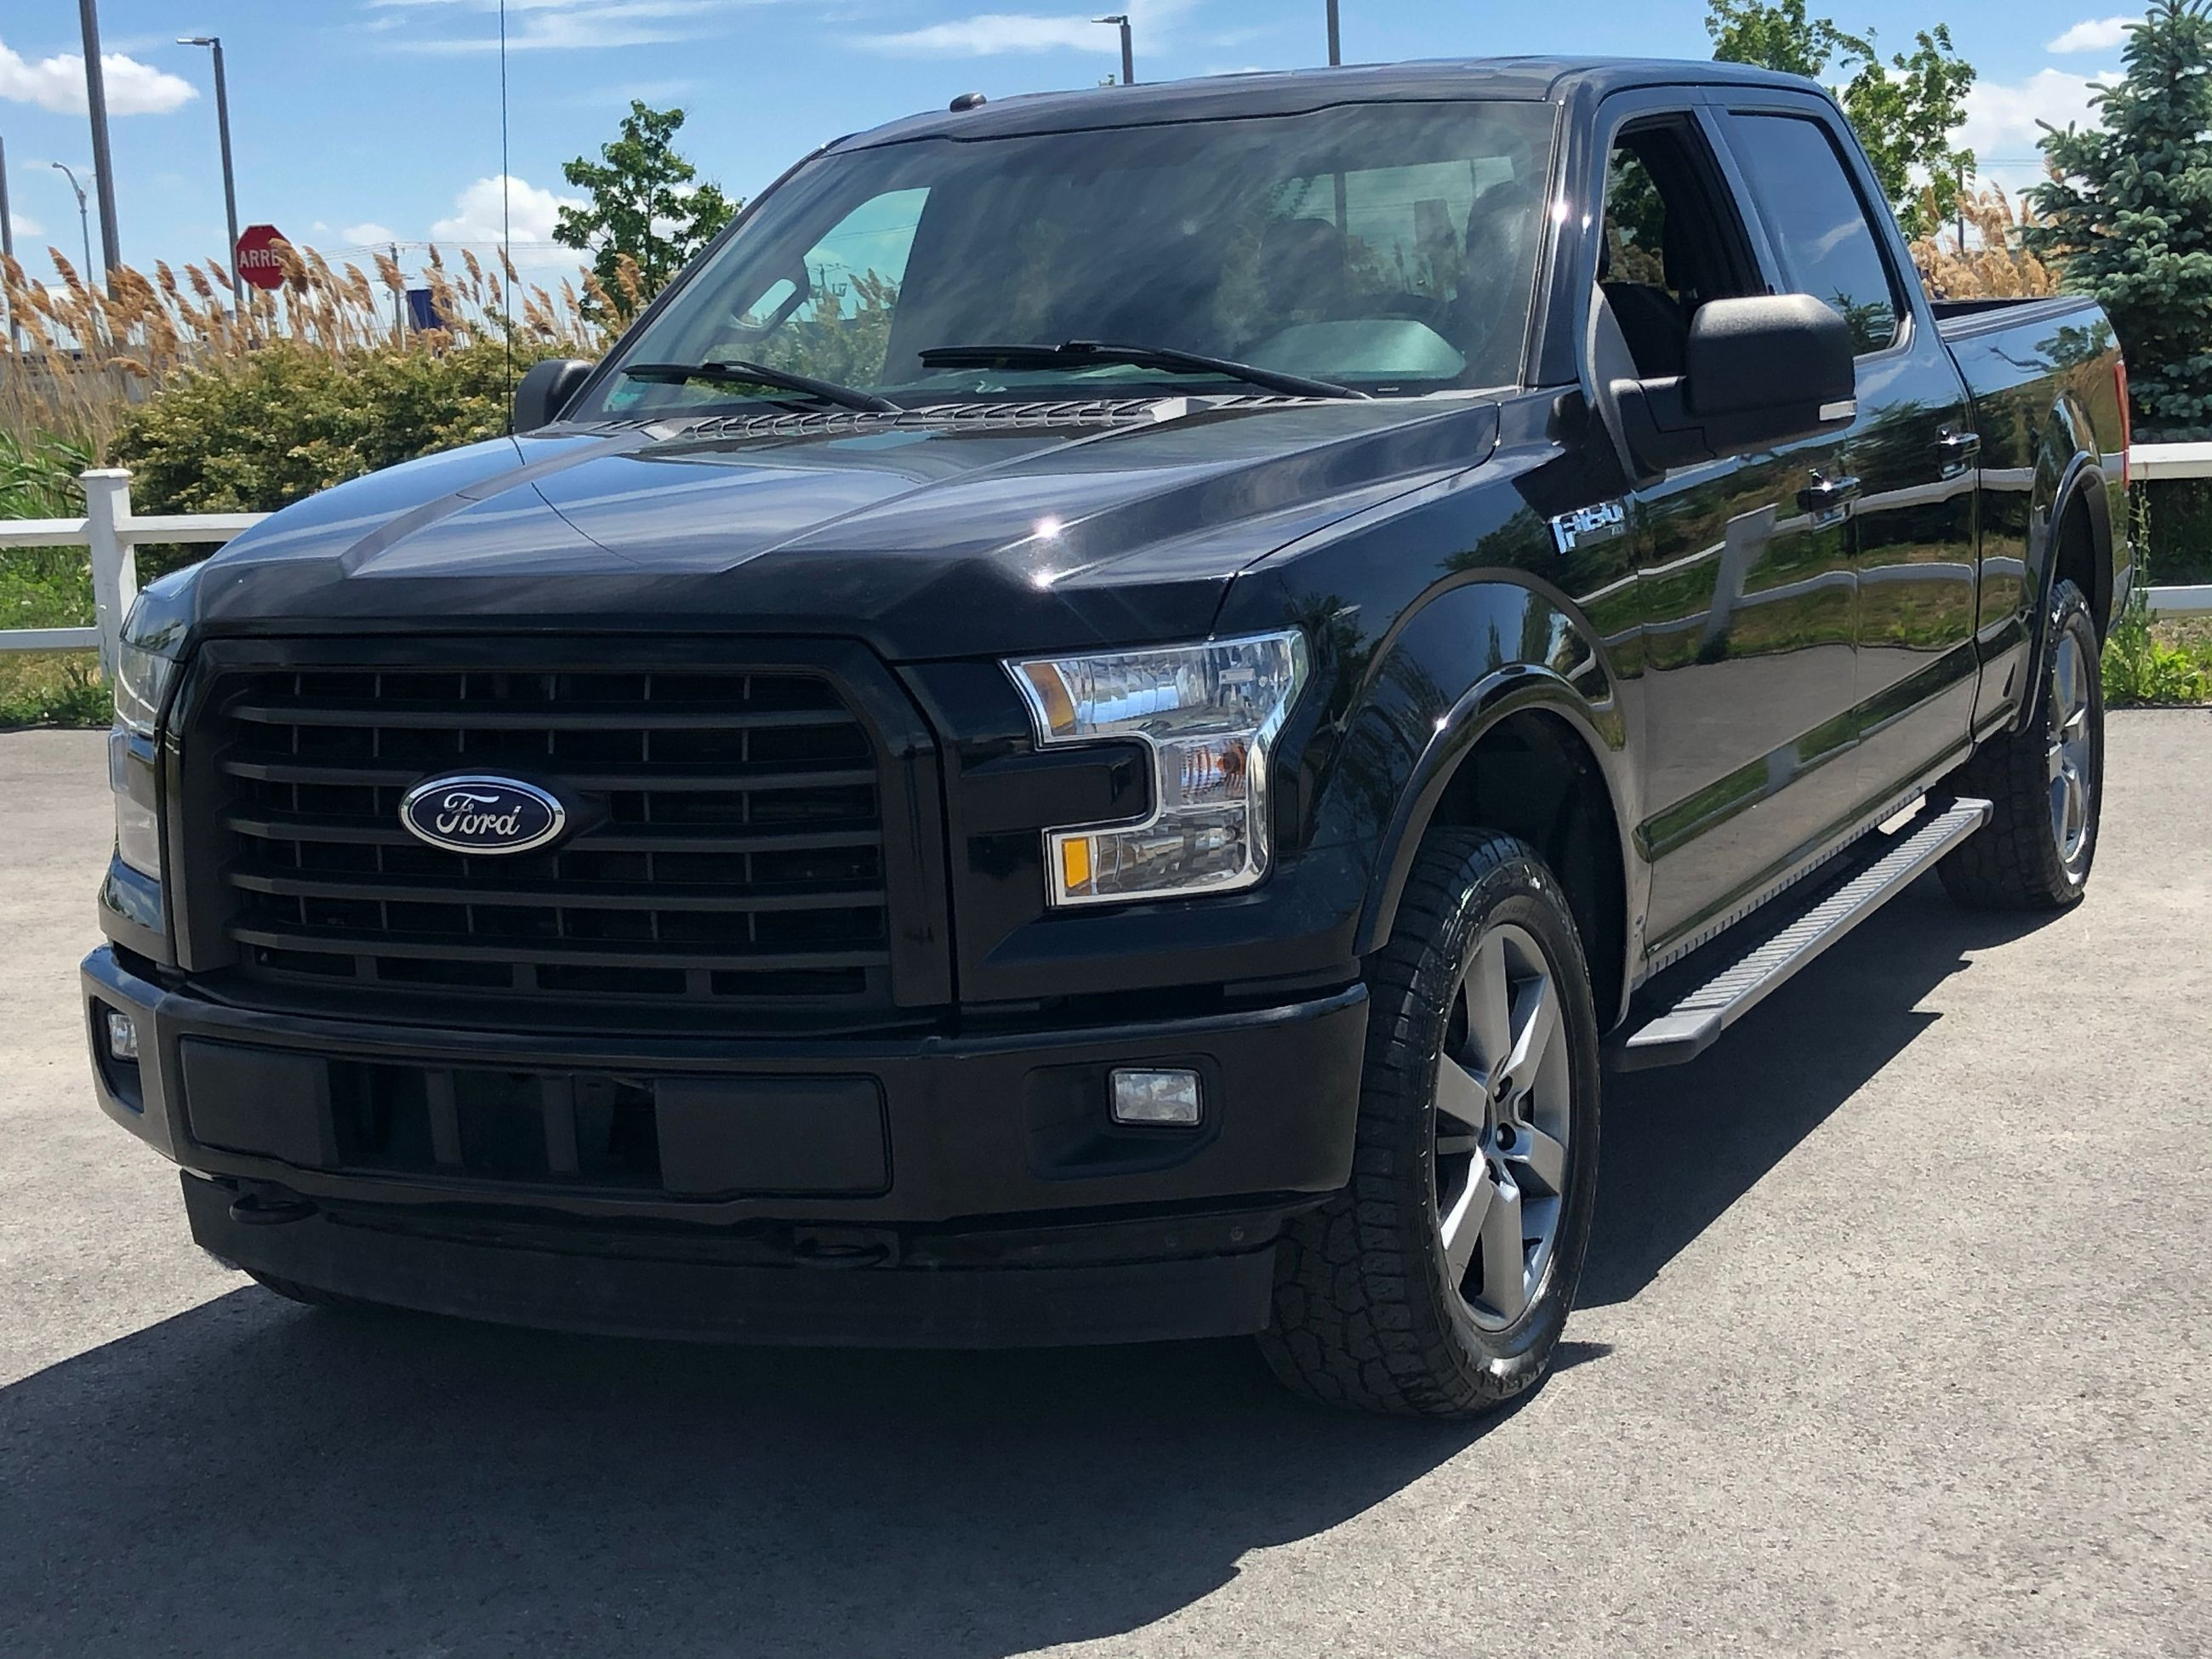 olivier ford sainthubert  ford f150 xlt 2016 d'occasion